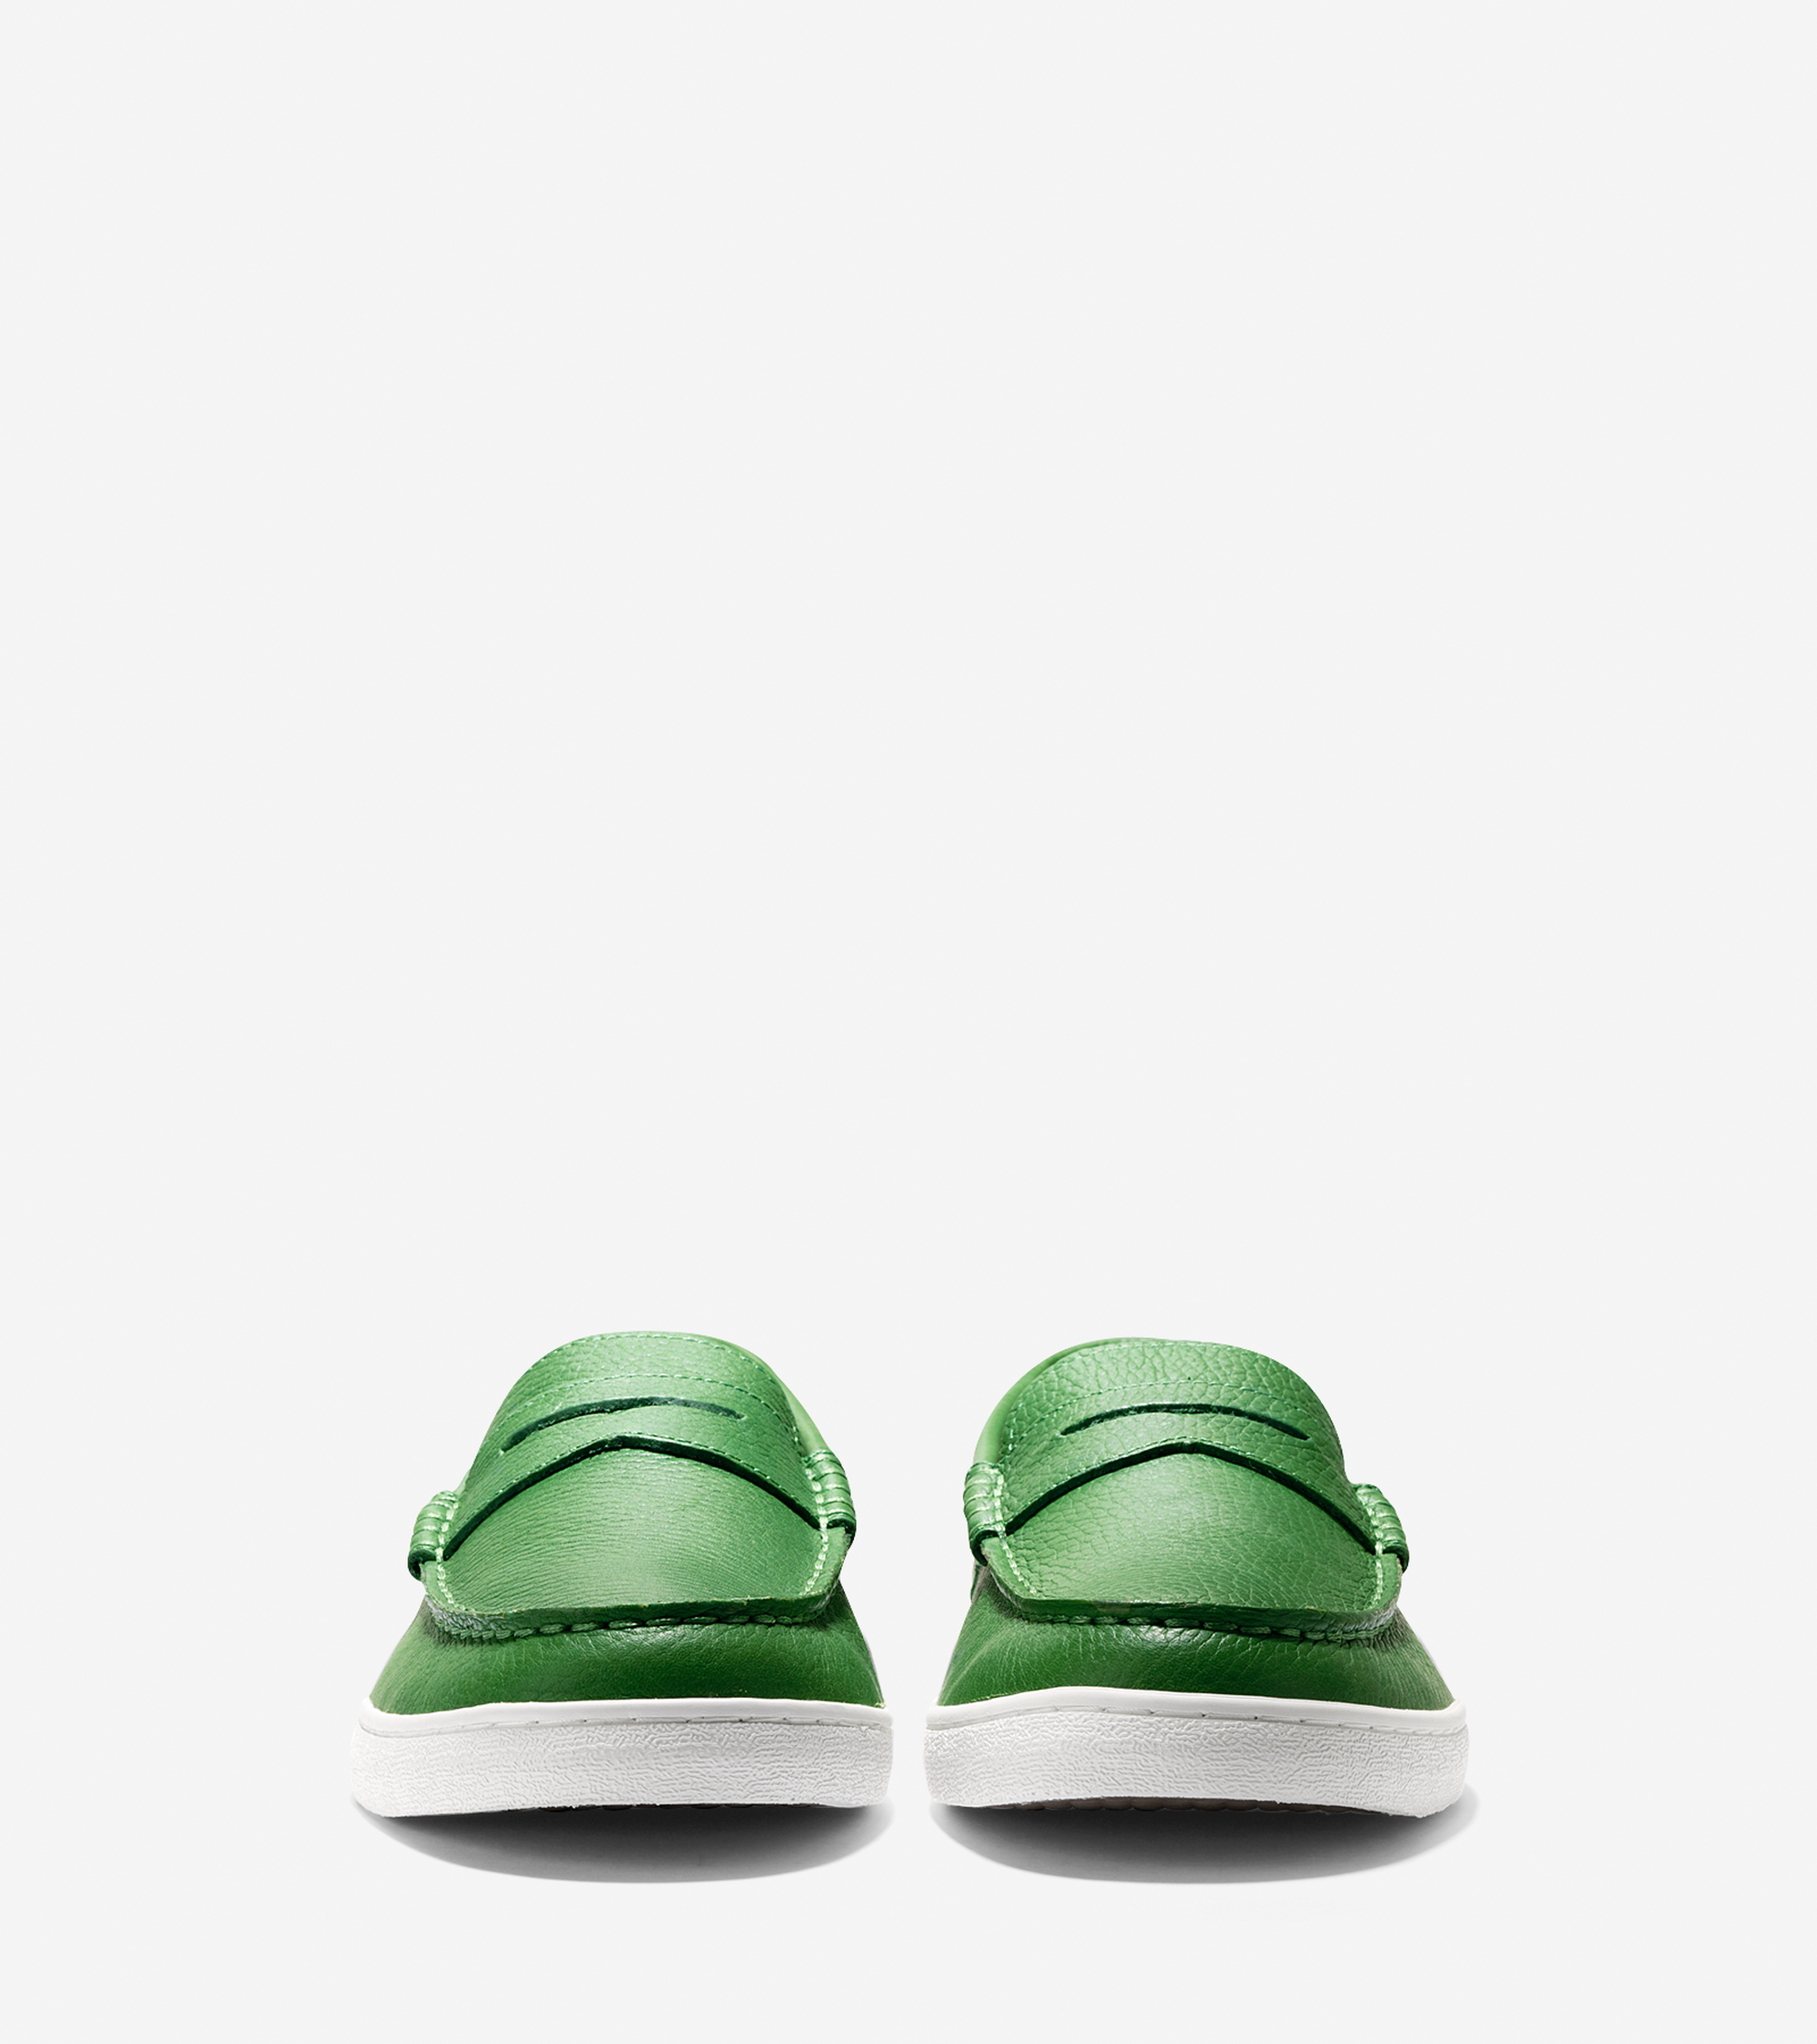 single men in pinch ★ cole haan 'pinch grand' penny loafer (men) @ update price mens loafers amp slip ons, save 30-70% off get free no-hassle 90-day returns [cole haan 'pinch grand' penny loafer (men)] shop with guaranteed low prices.